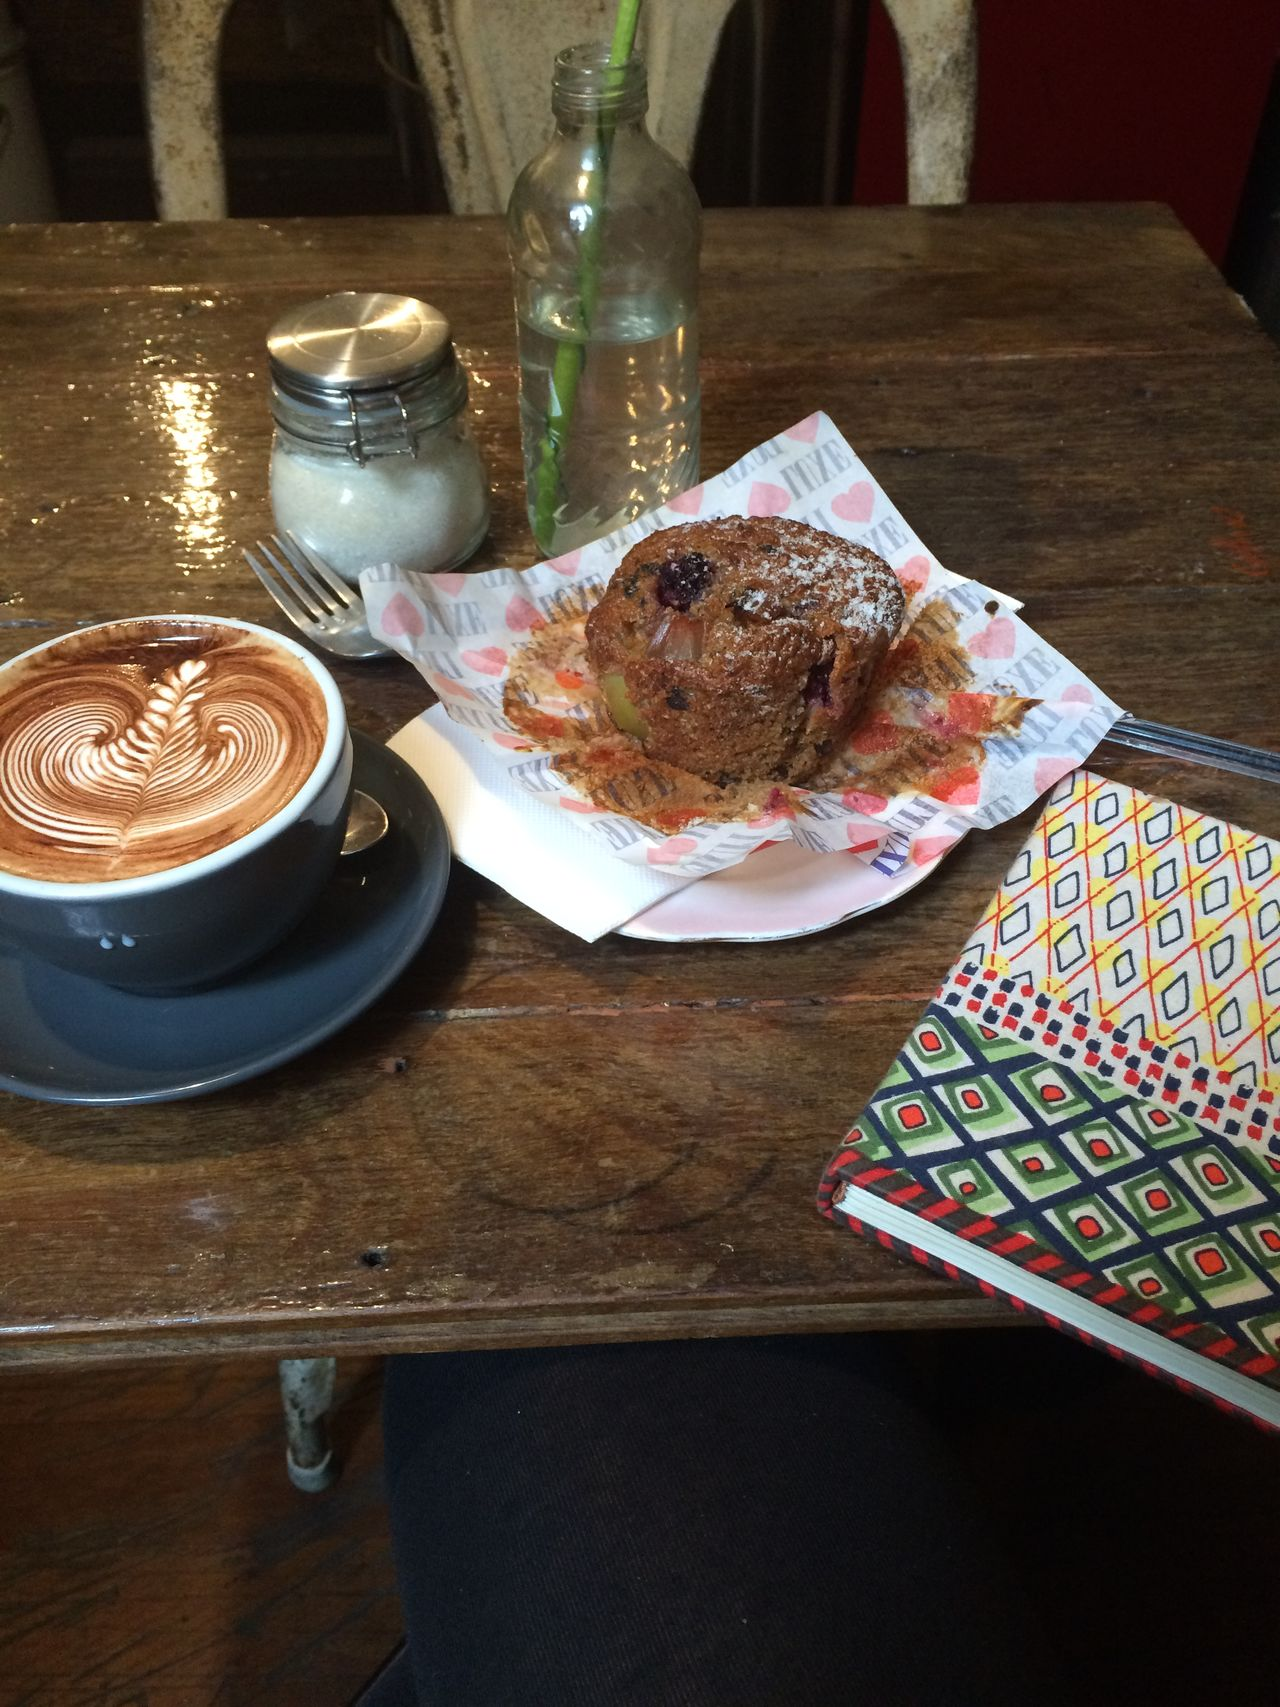 Break Cafe Coffee Diary Muffin No People Table Writing